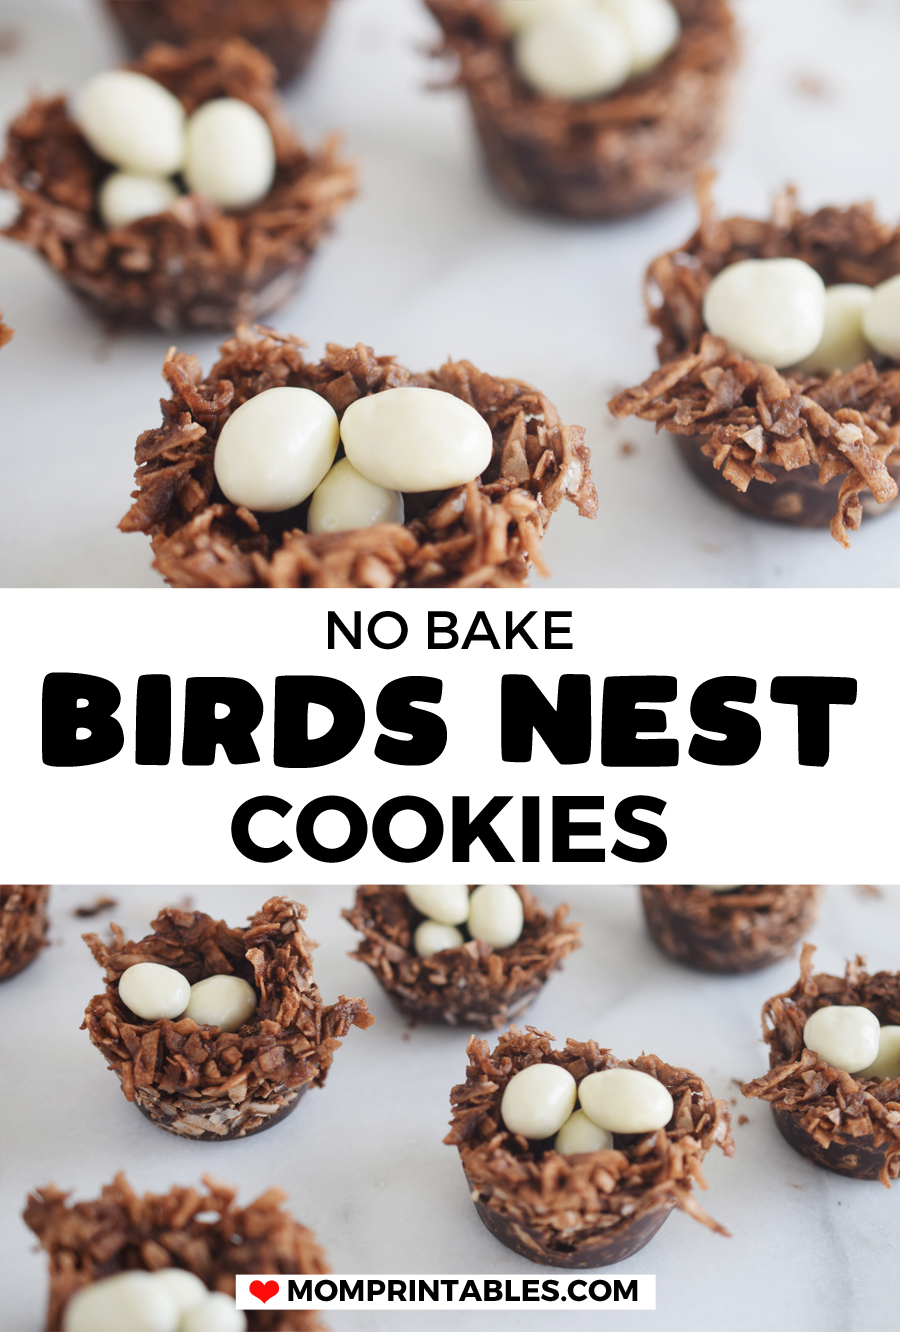 These no bake birds nest cookies are made with cocoa powder, coconut oil, maple syrup, shredded coconut and topped with yogurt covered raisins. They're the perfect Spring treat!  | Easter treats | shredded coconut | baby shower | recipe | kids | fun | no bake cookies | coconut | healthy | fun | sweets | gluten free | nut free | parties | simple | easter candy | muffin tins | dessert ideas | kid friendly | toddler snack | #springcookie #eastertreat #birdsnestcookie #cookie #recipe #kidsrecipe